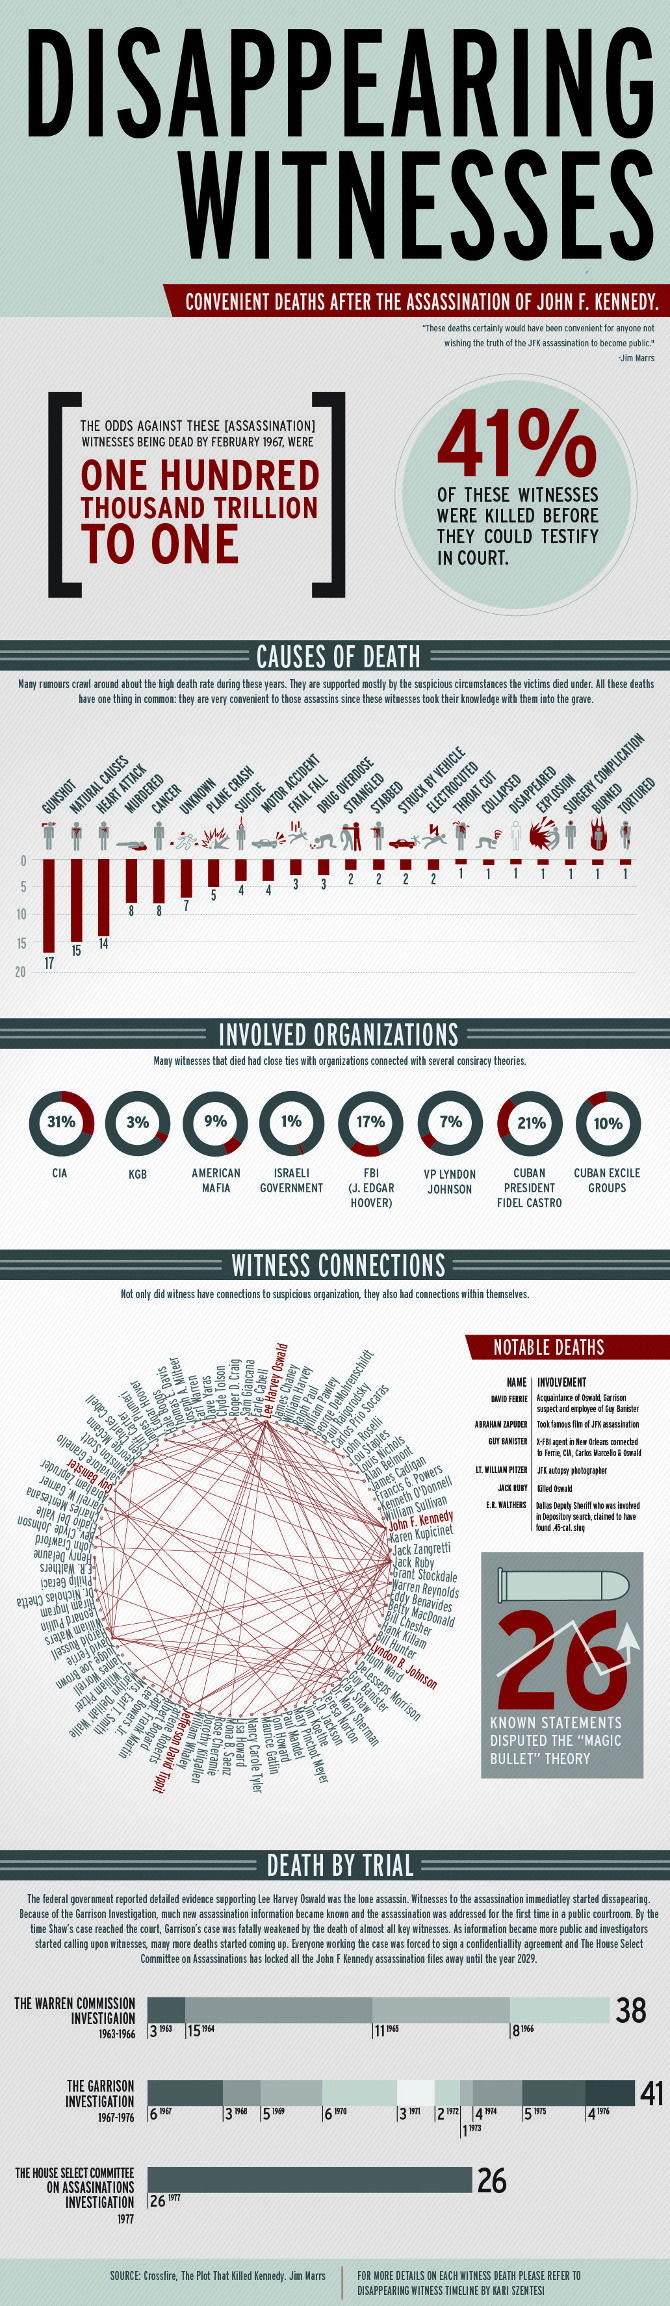 Infographic definition iconoclastic wars